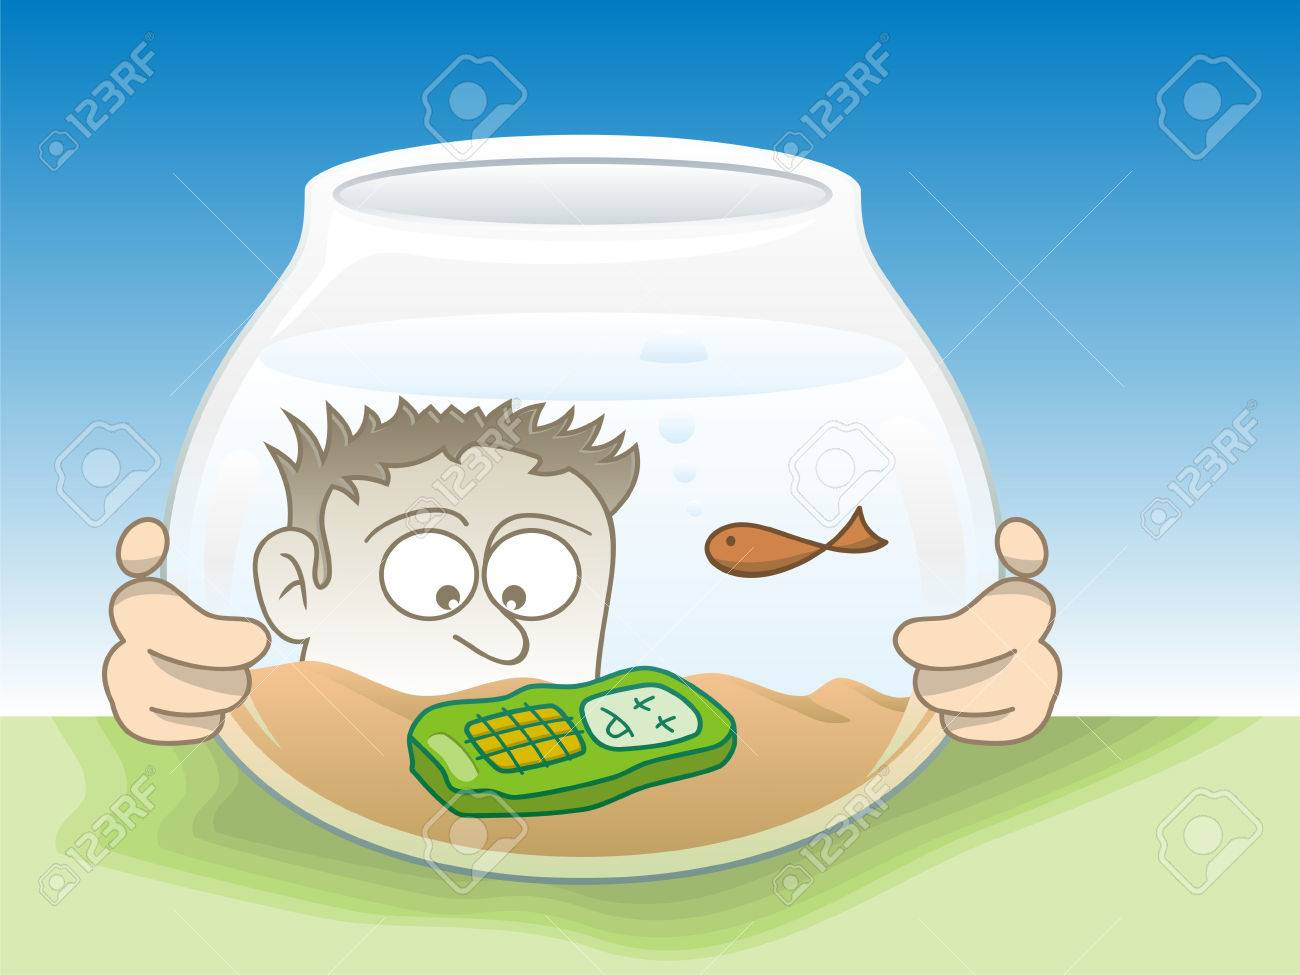 Cartoon illustration of a young man staring his drown cellphone. - 2985983